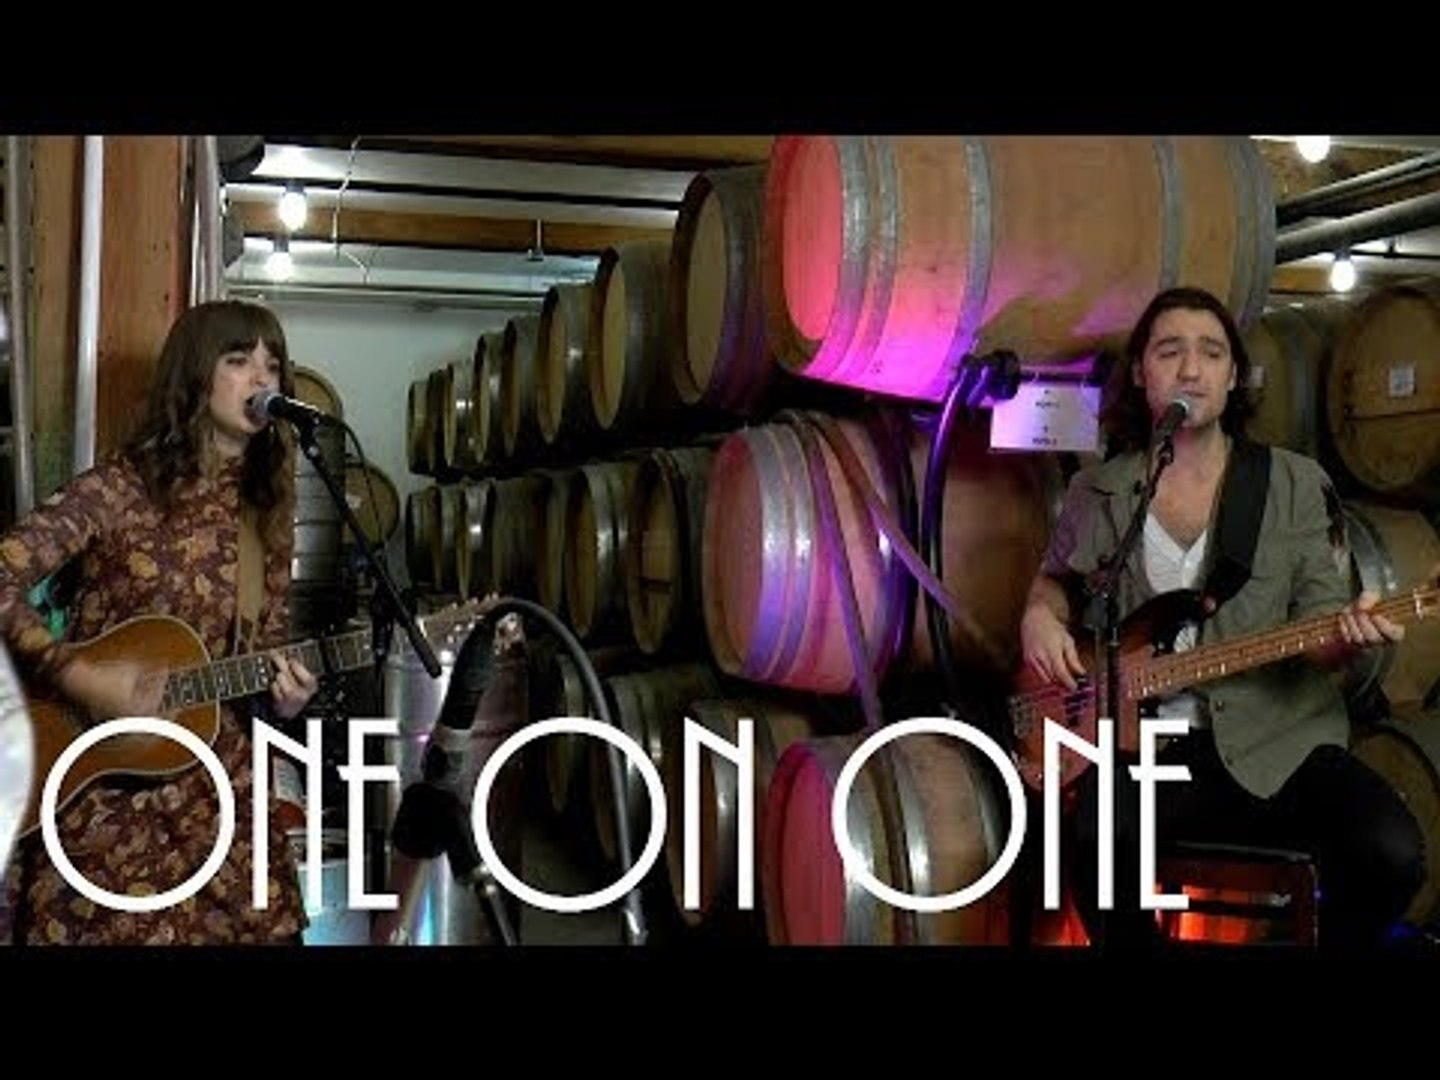 Cellar Sessions: Rebecca Haviland and Whiskey Heart 10/25/17 City Winery New York Full Session